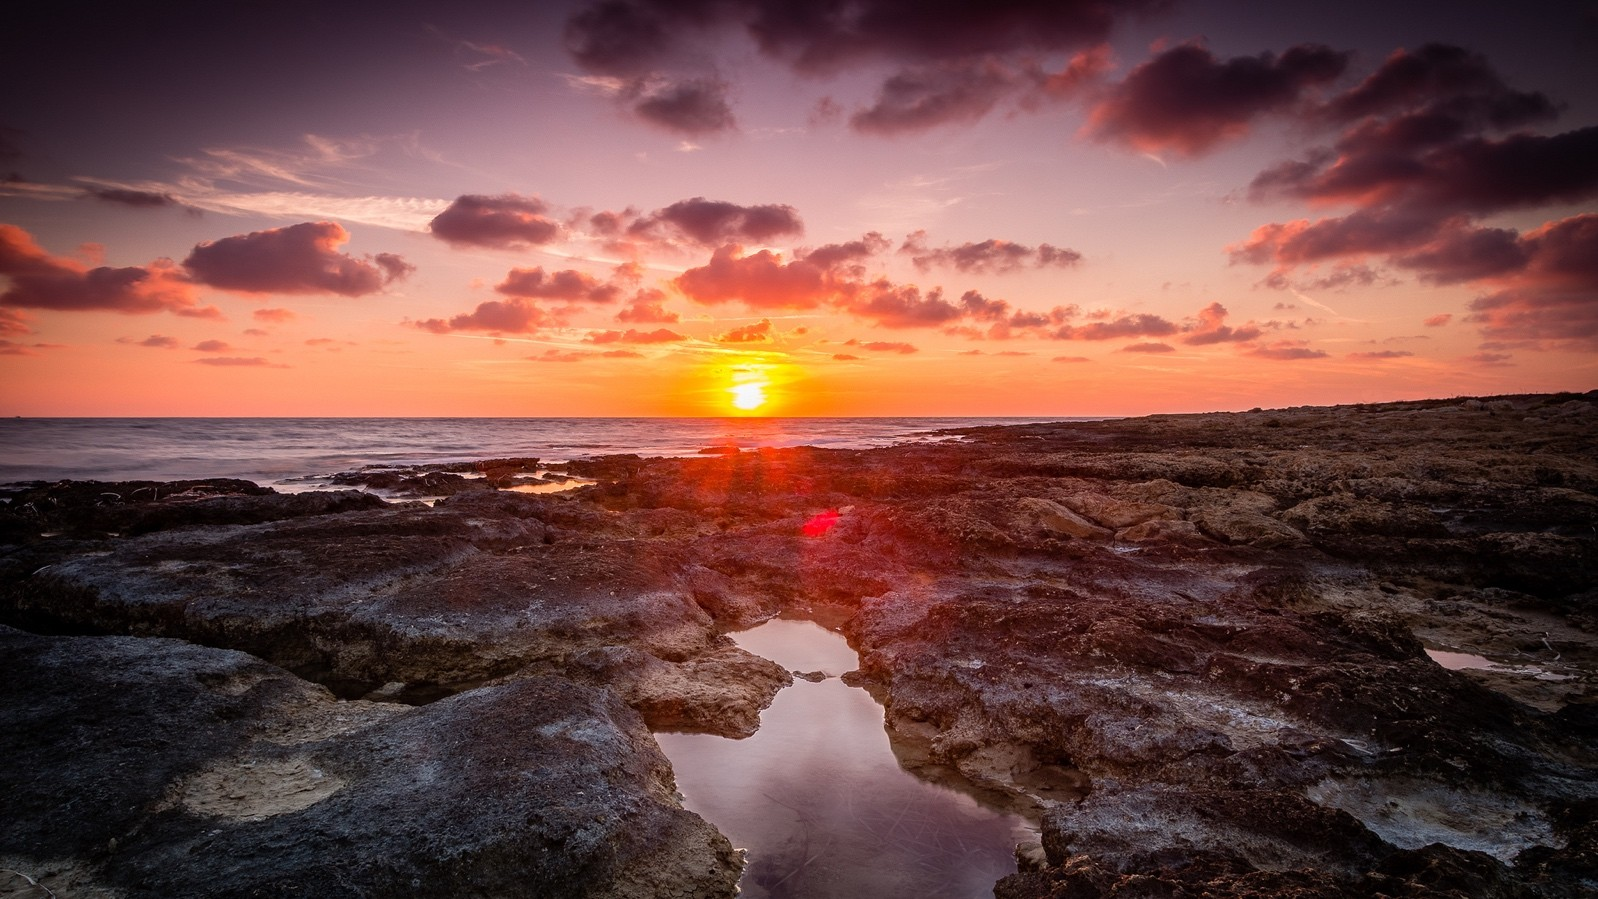 A beautiful October sunset in Paphos, photography by Anup Shah